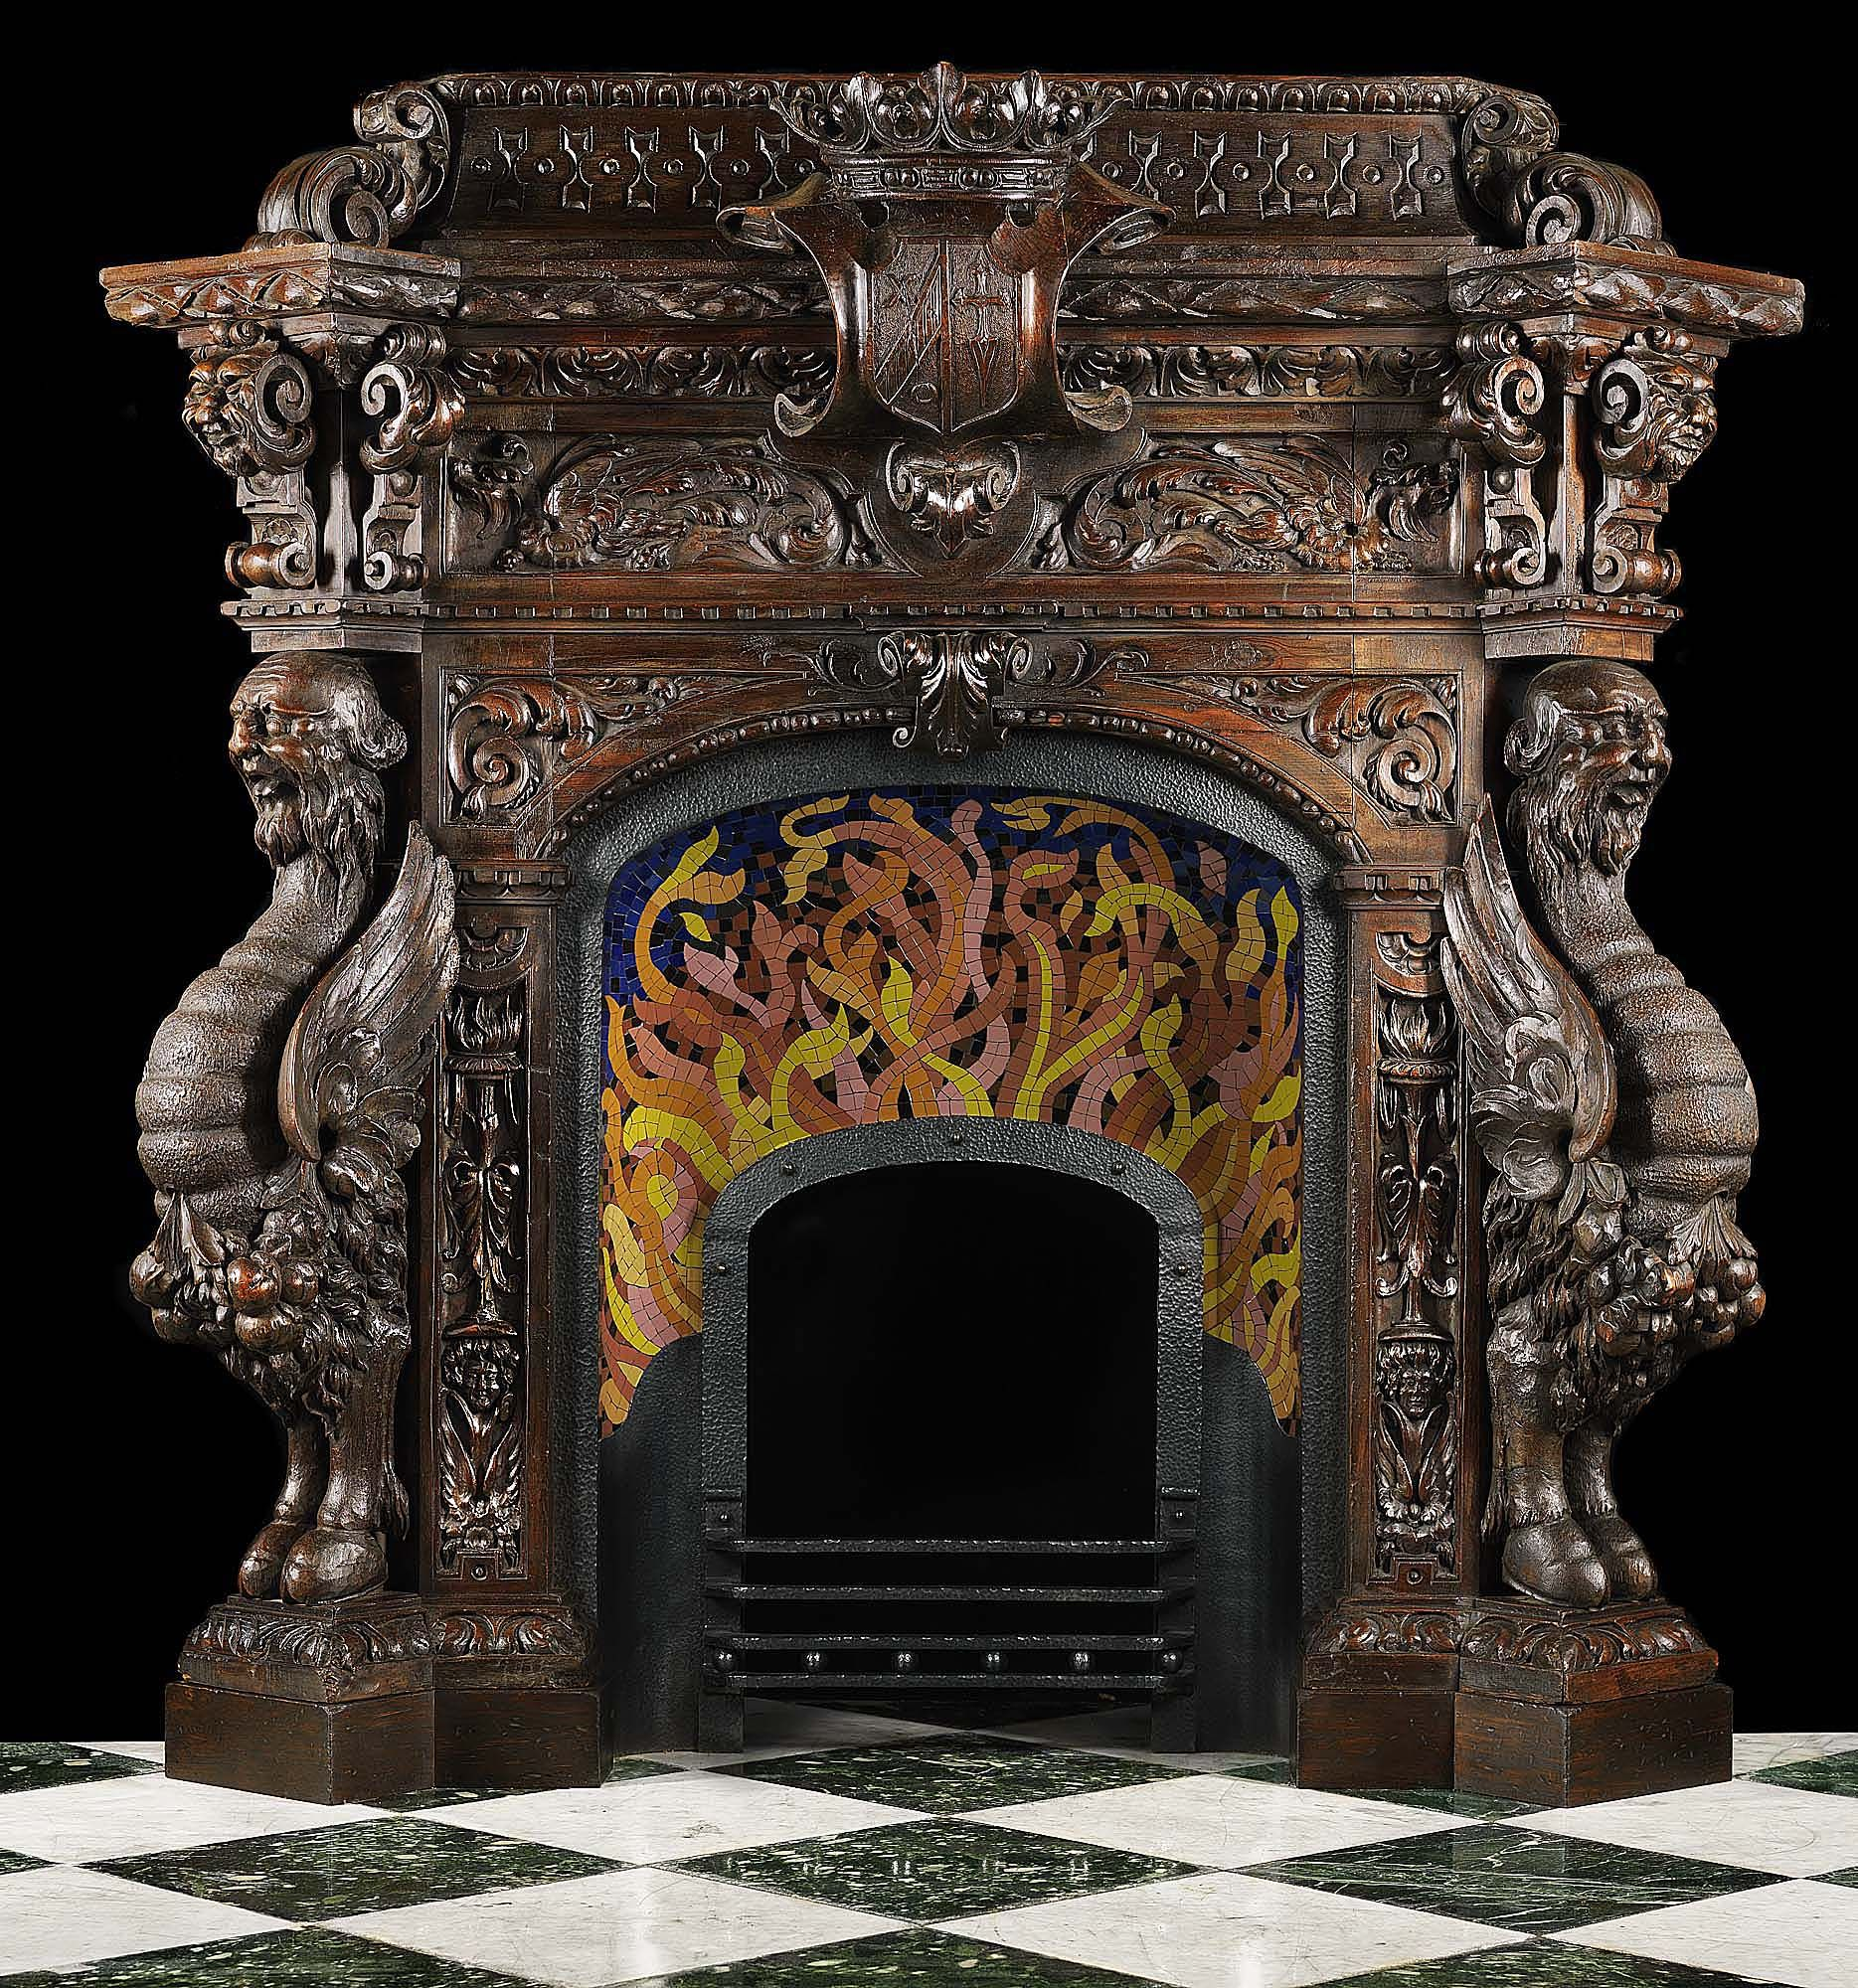 antique spanish mannerist fireplace mantel in carved wood rococo rh pinterest com Wood Carved Fireplace Mantels Dollywood Carved Wood Mantels Shelf